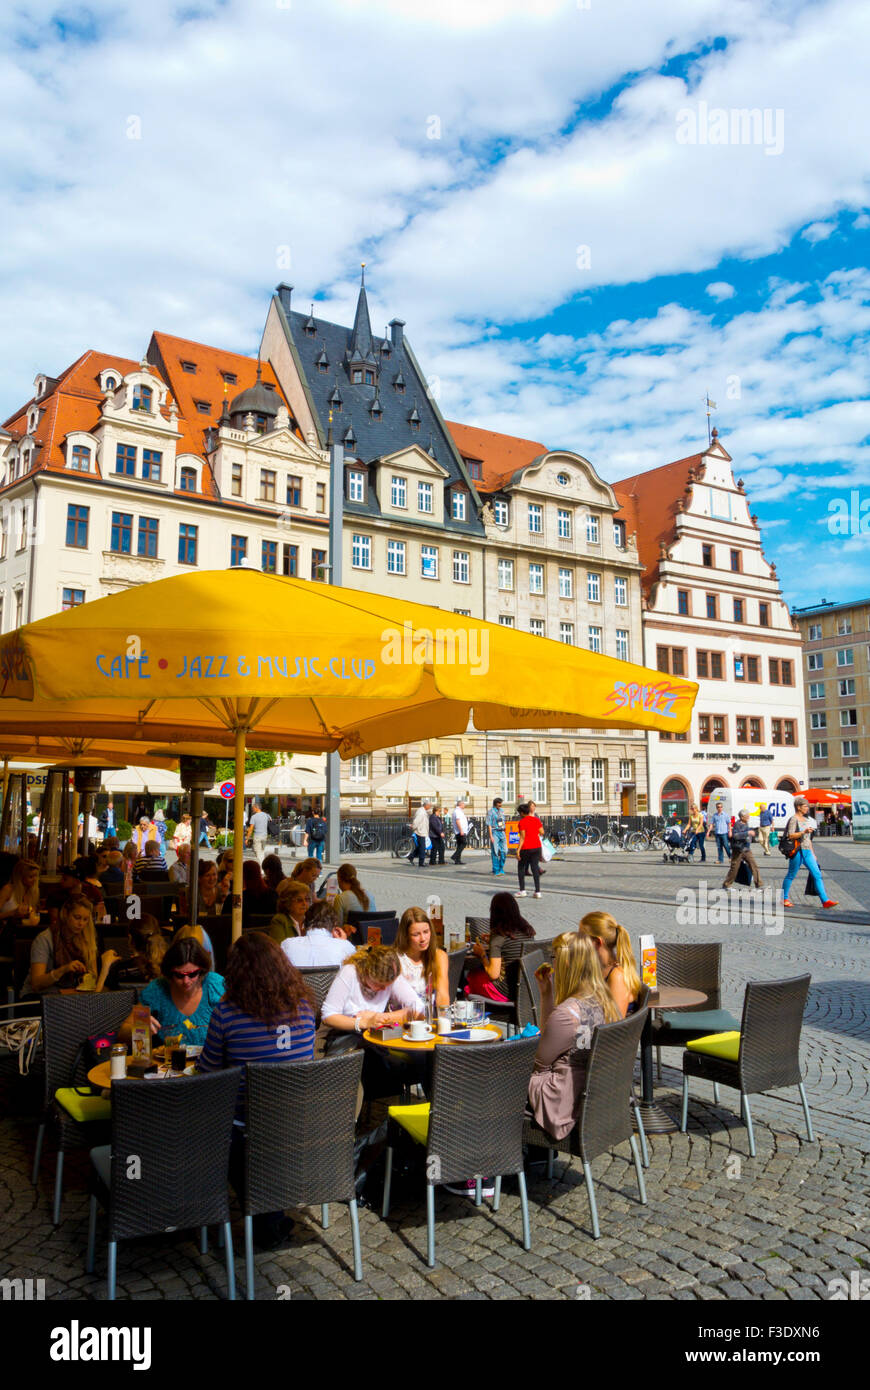 Restaurant terraces, at corner of Markt and Barfussgäßchen, Altstadt, old town, Leipzig, Saxony, Germany - Stock Image